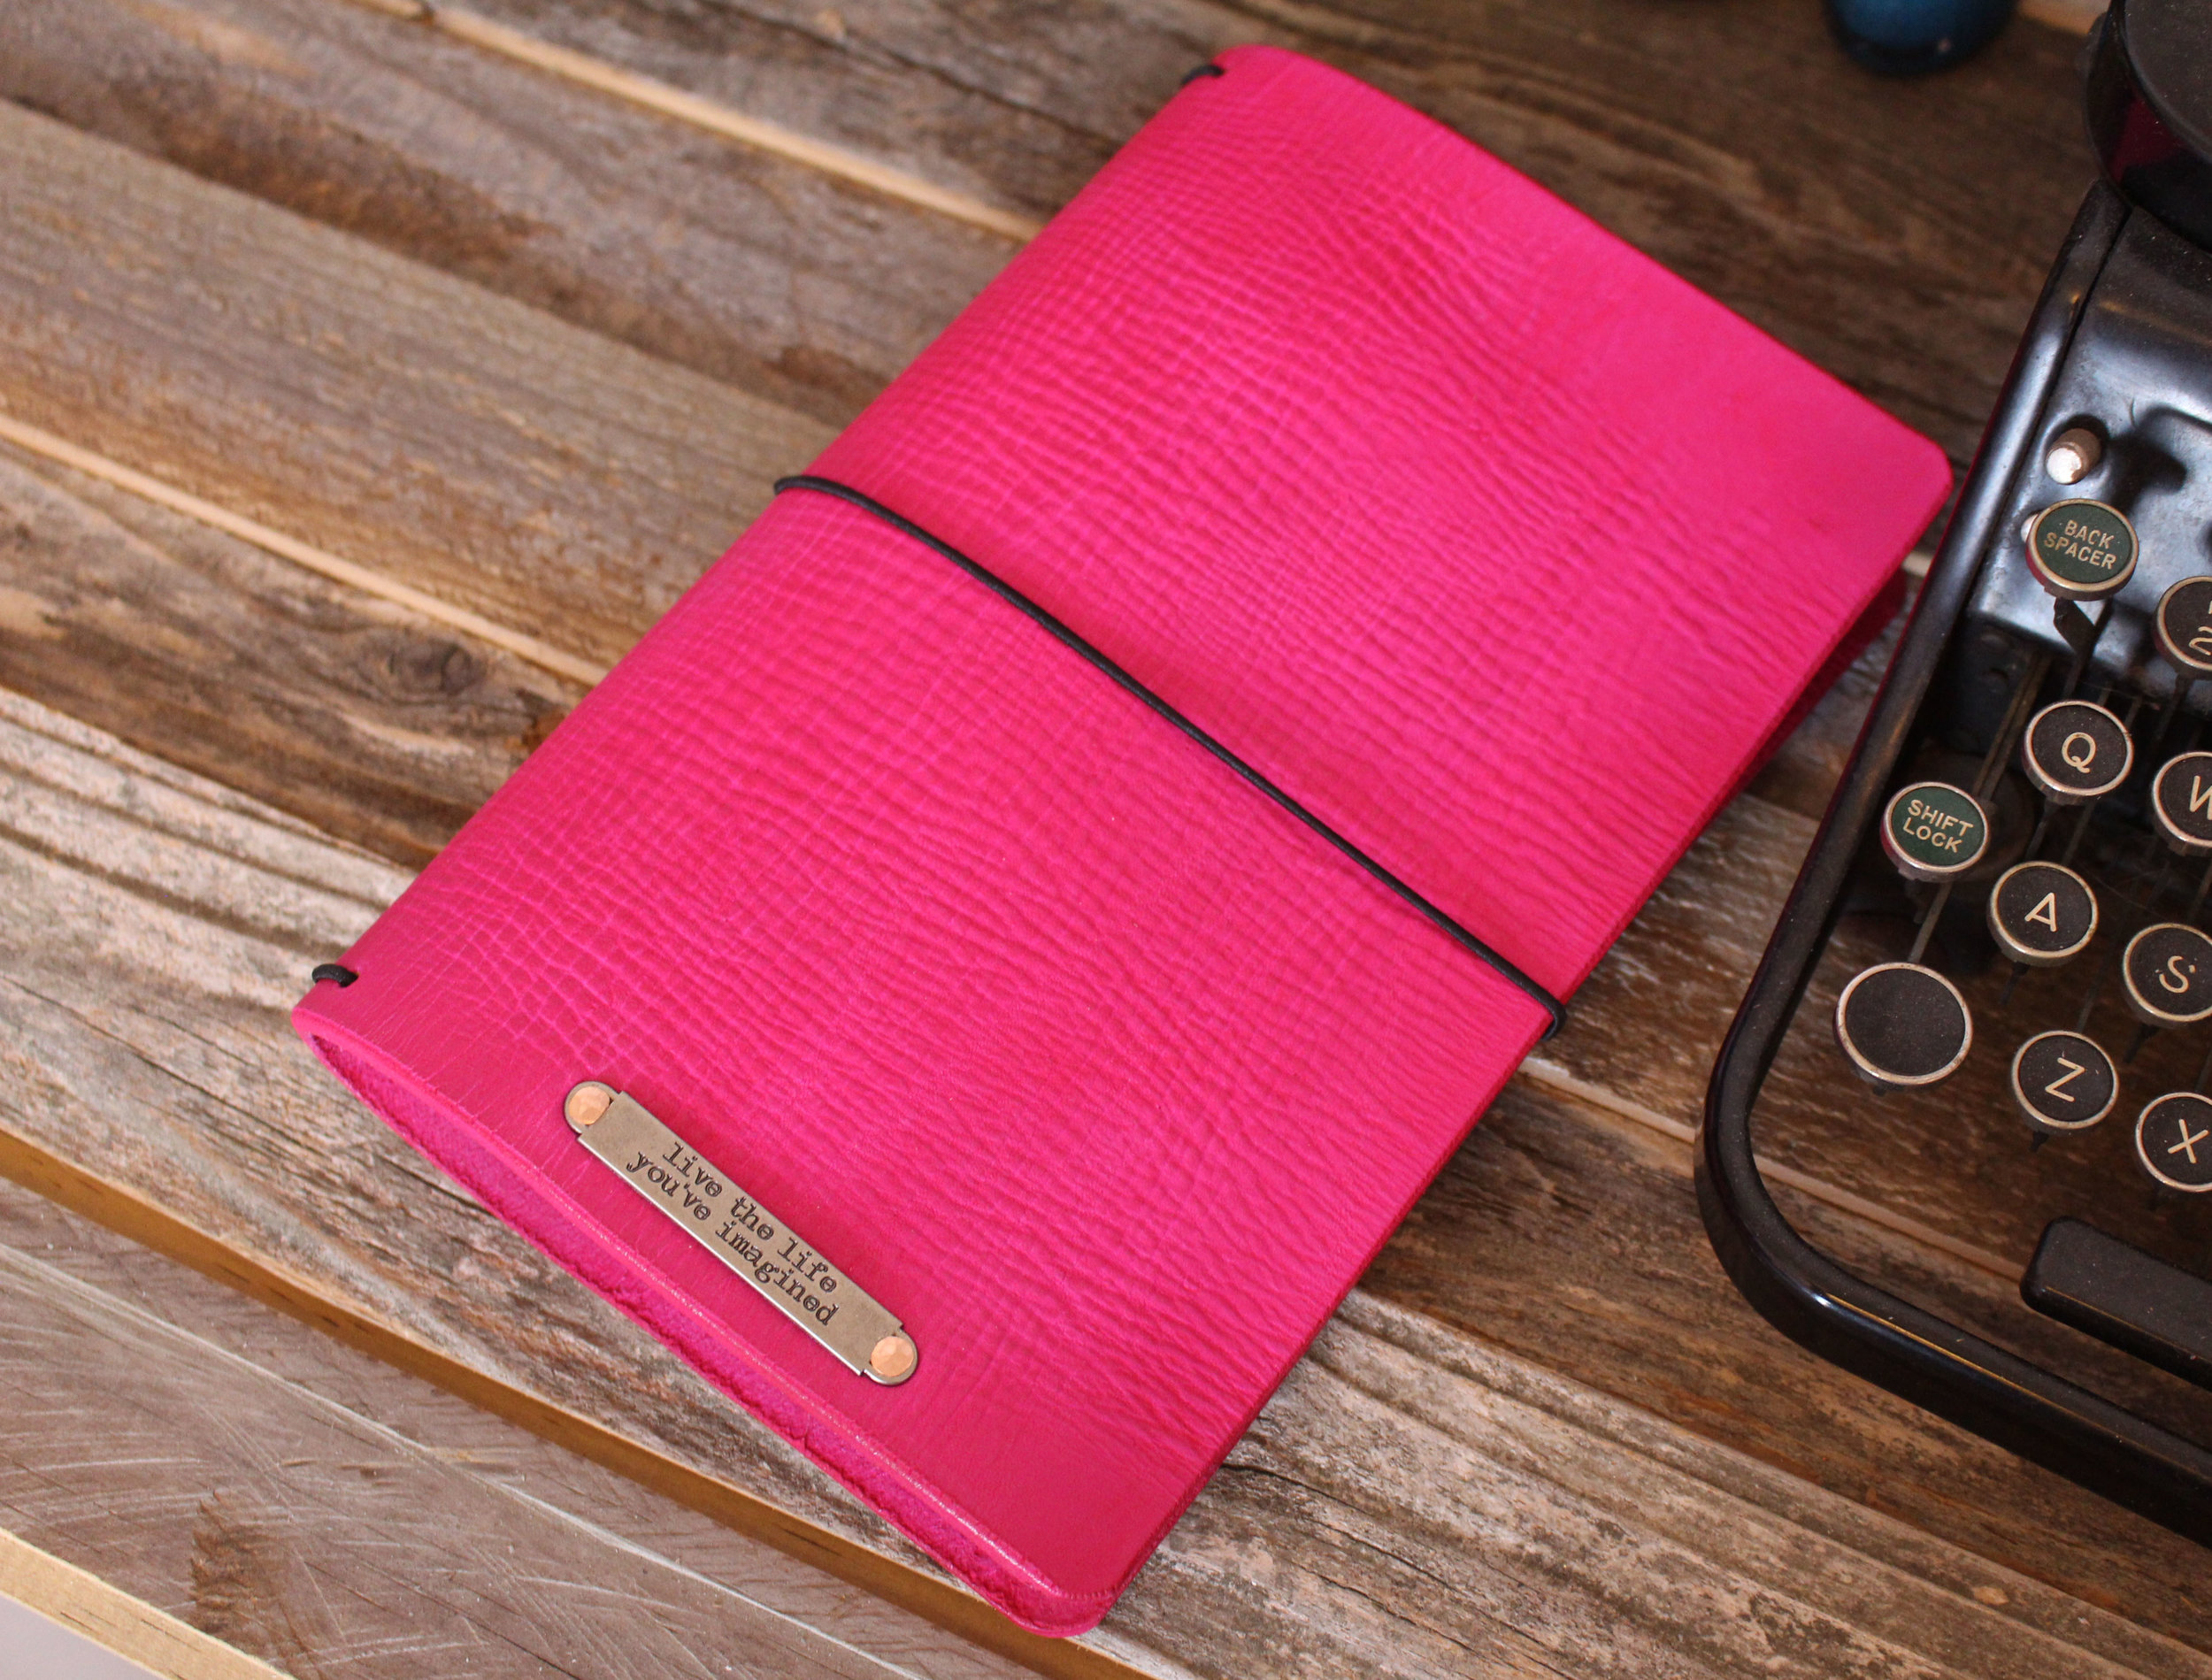 13 Sizes Nude Leather Quill Travelers Notebook Trifold Notebook Cover